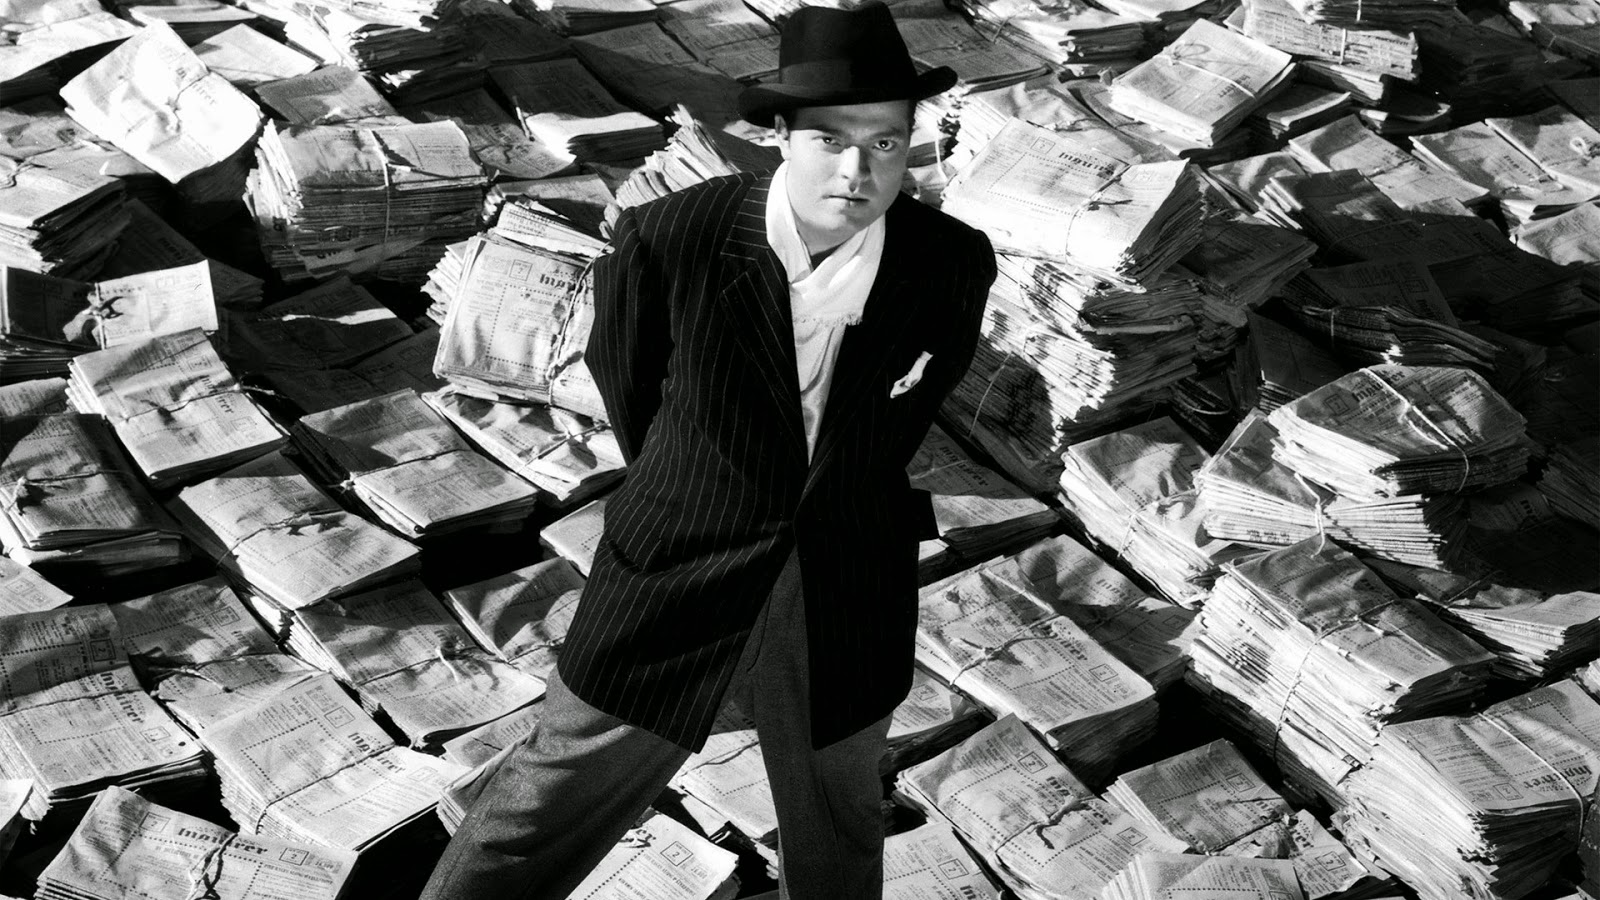 citizen kane directed by orson welles Citizen kane (1941) directed by orson welles home / movies / citizen kane / analysis / symbols and tropes /  it wasn't exactly a secret that welles was taking a sharp bite at william randolph hearst in this film.